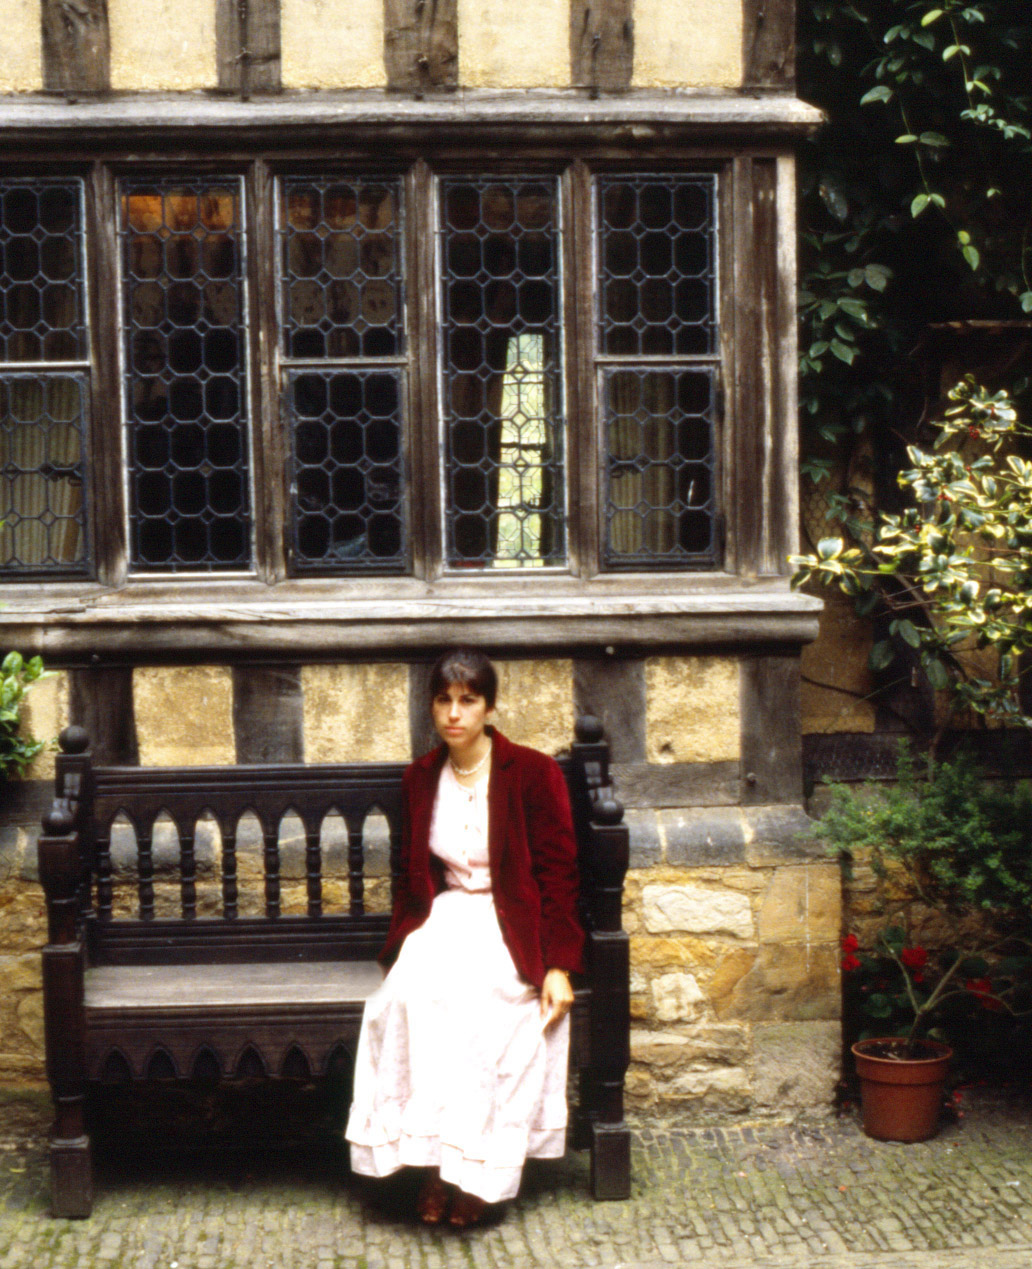 Hastings, England - Courtyard- a tired tourist